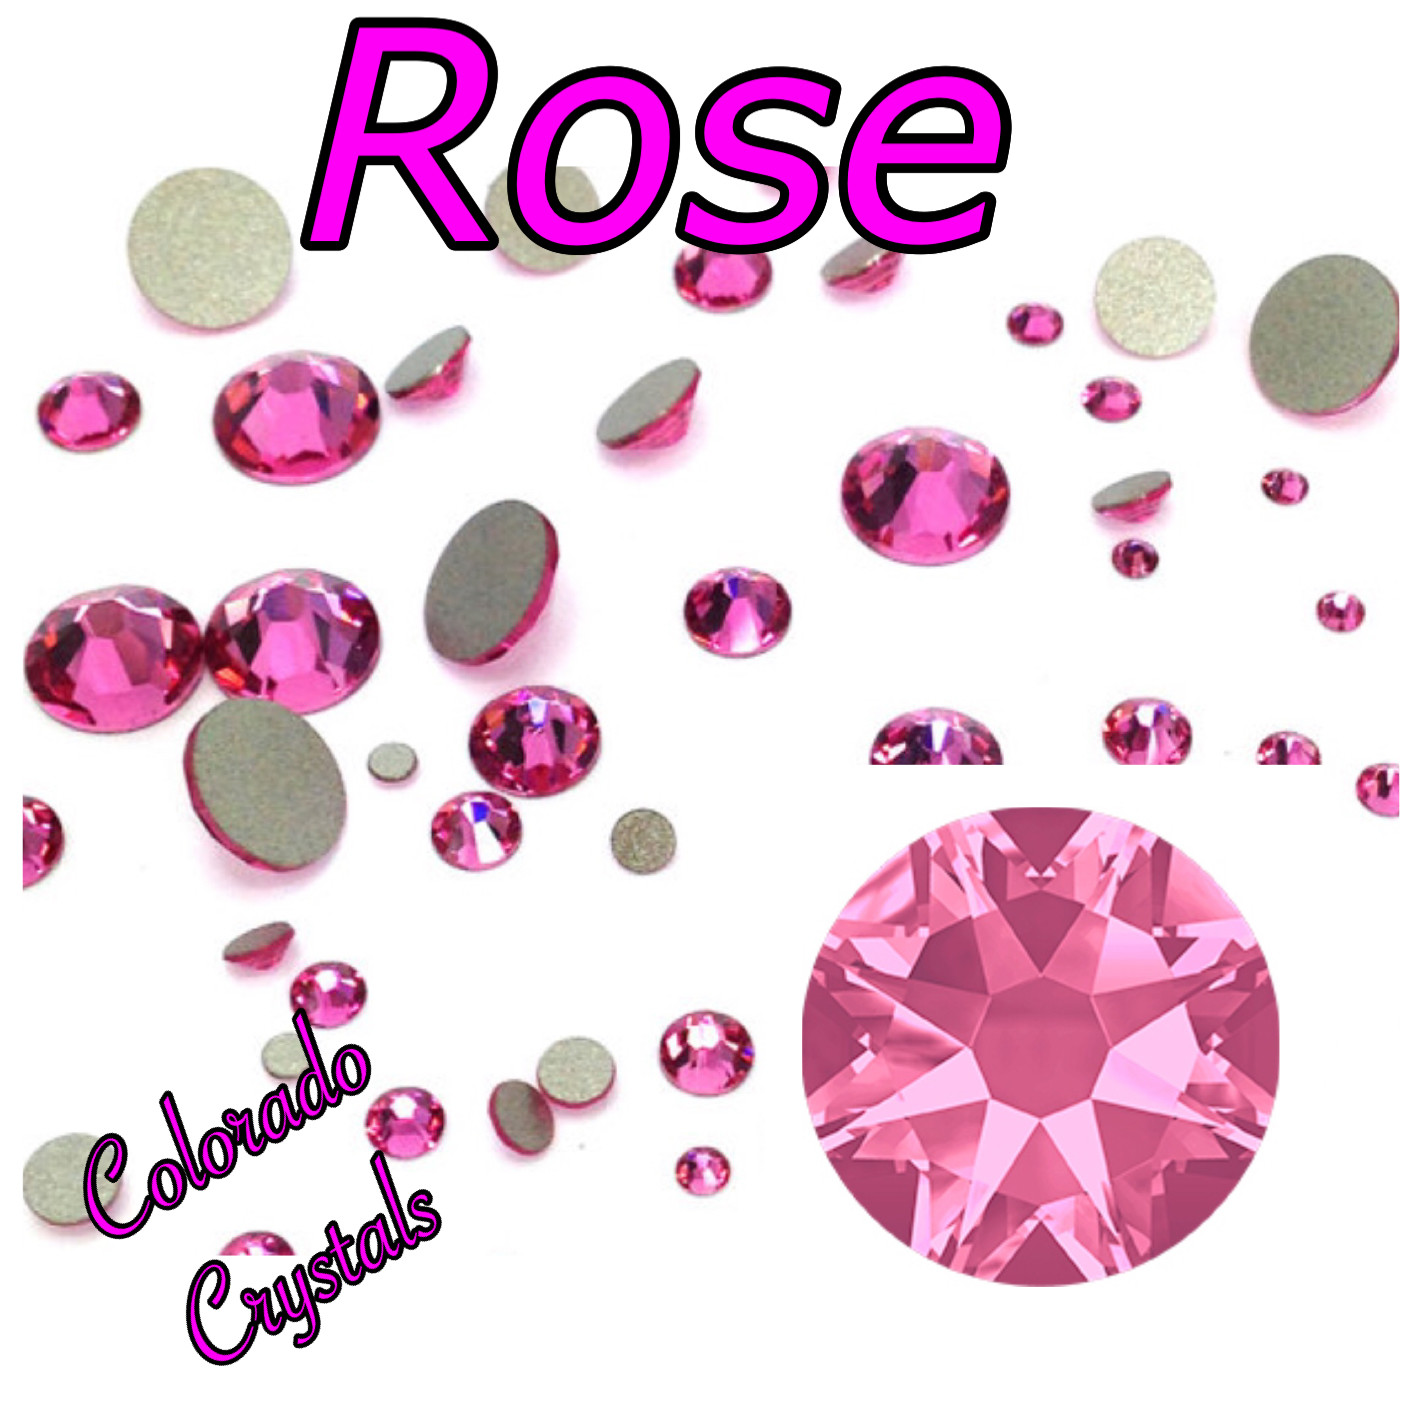 Rose 5ss 2058 Limited Pink Crystals Swarovski